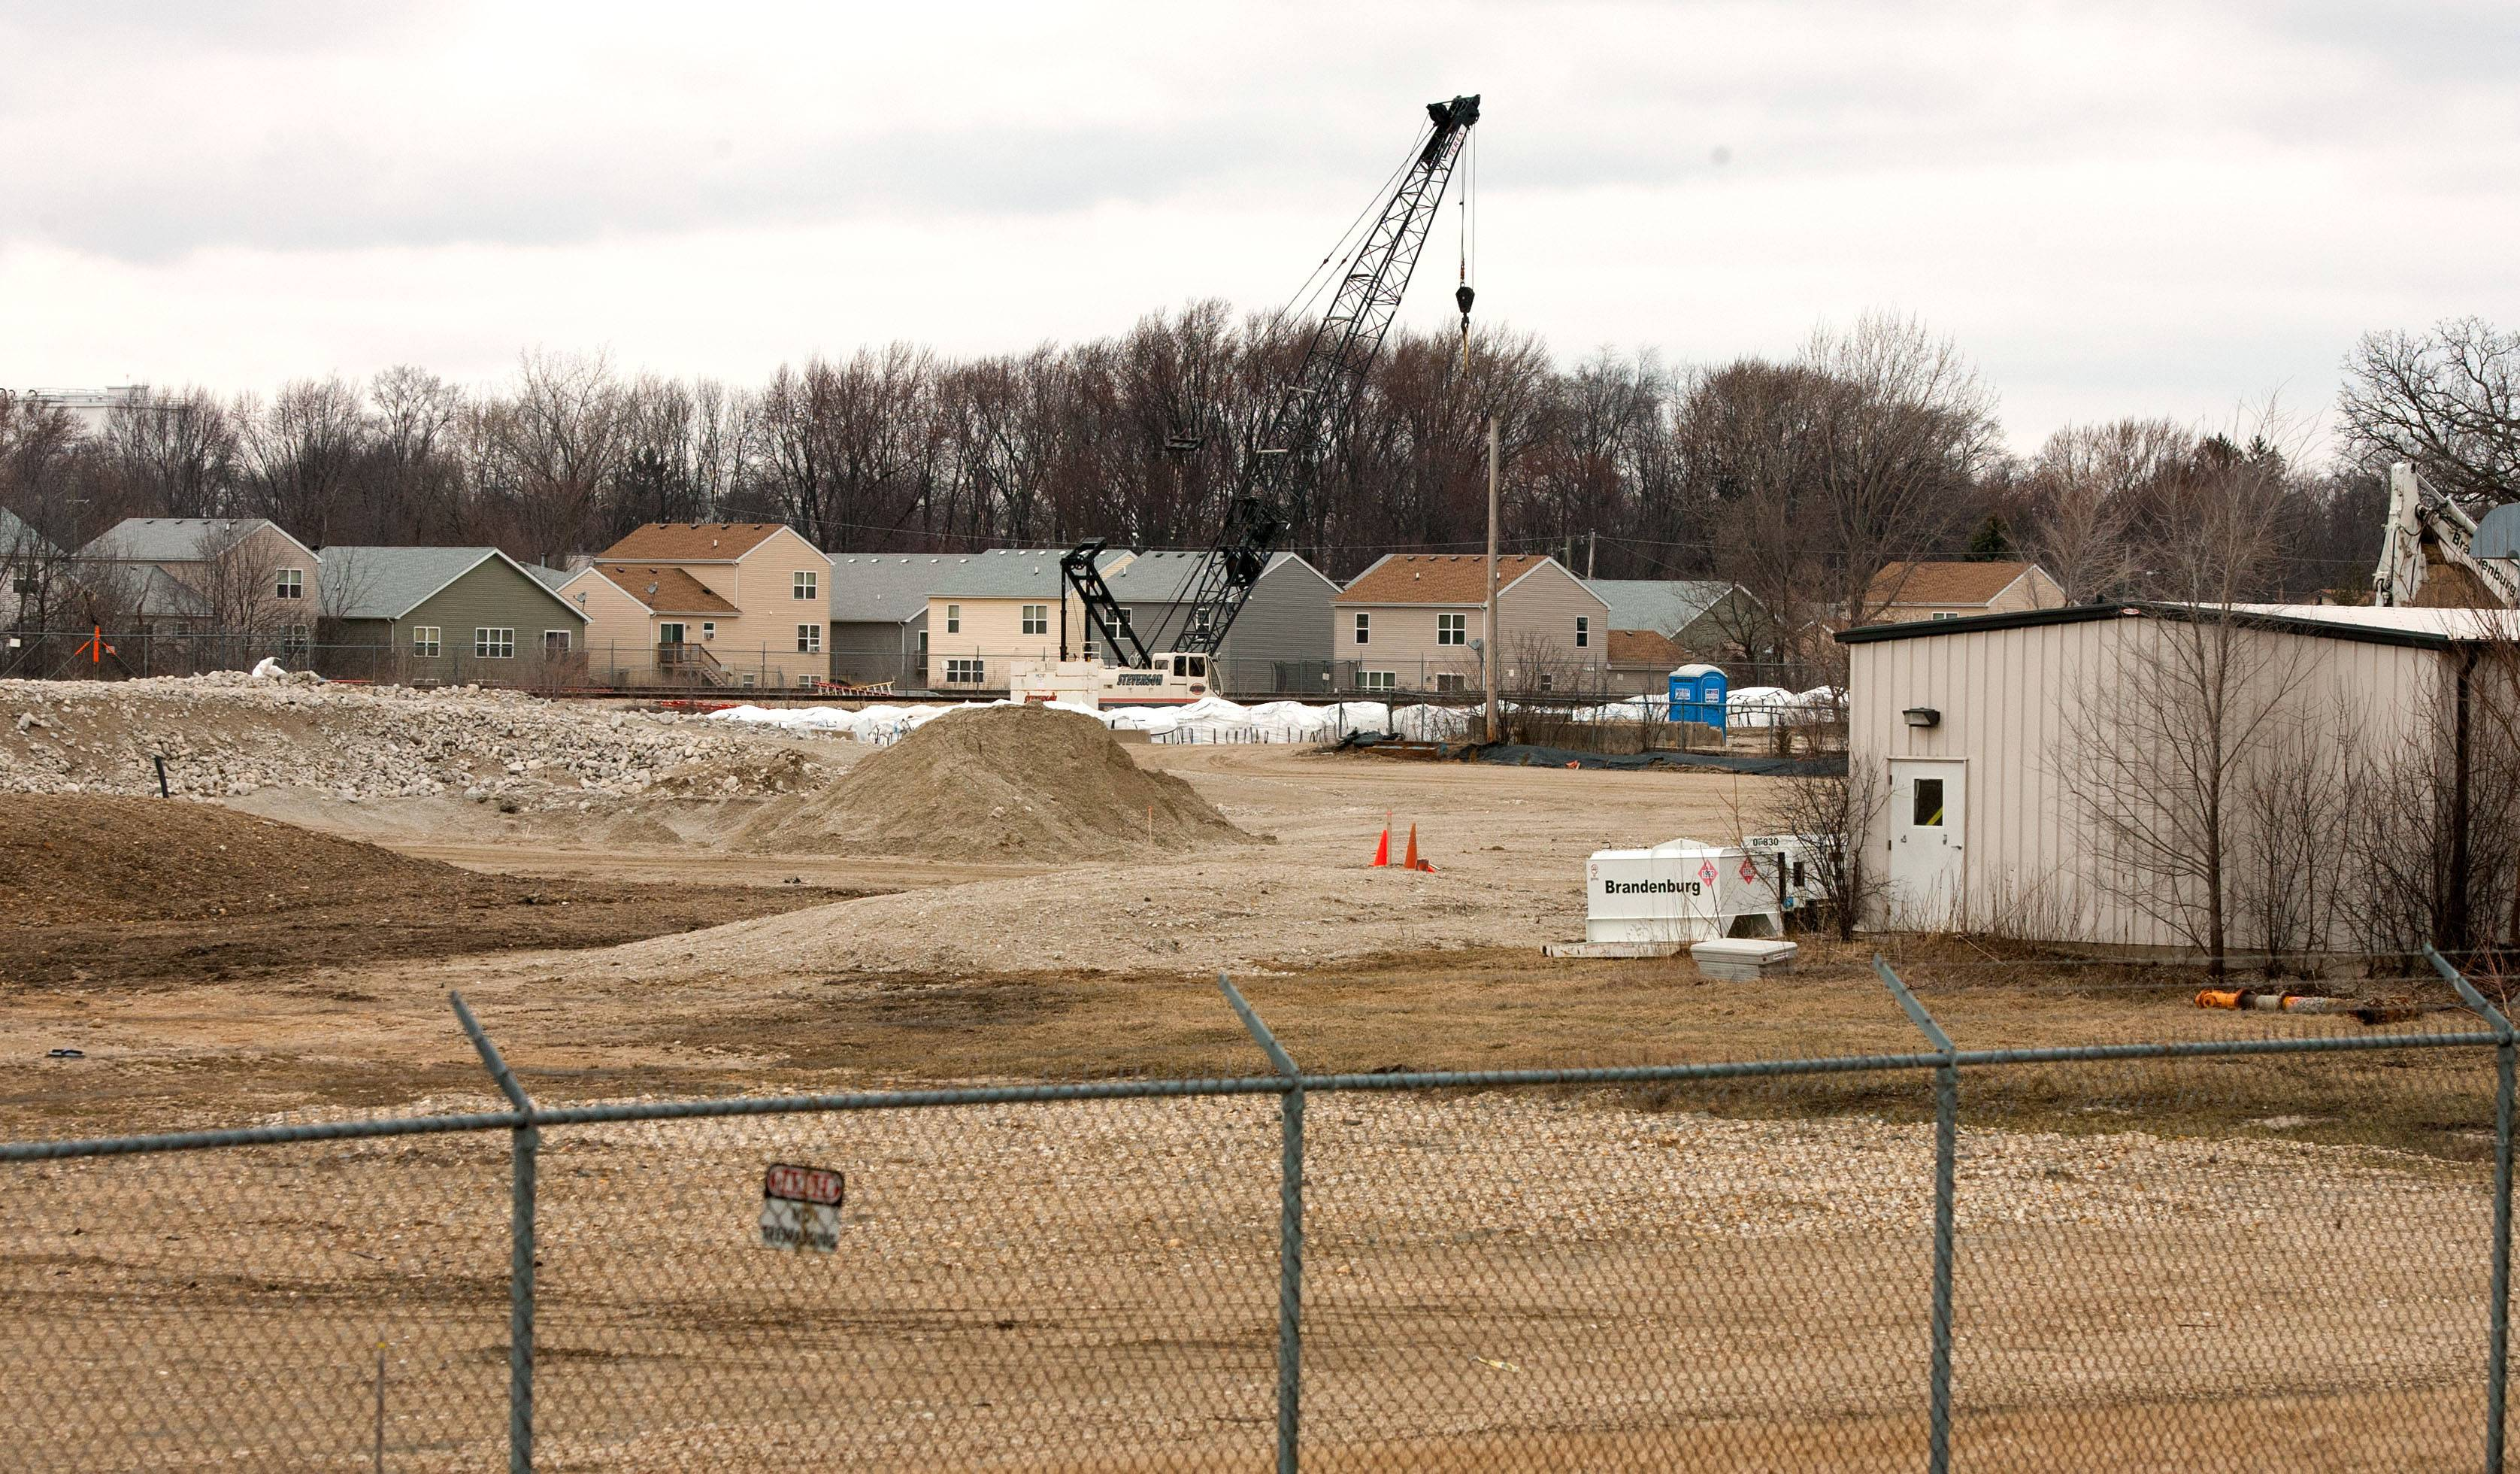 Money approved by the U.S. House this week is aimed at avoiding a stall of the environmental cleanup project at the former Kerr-McGee factory site in West Chicago.